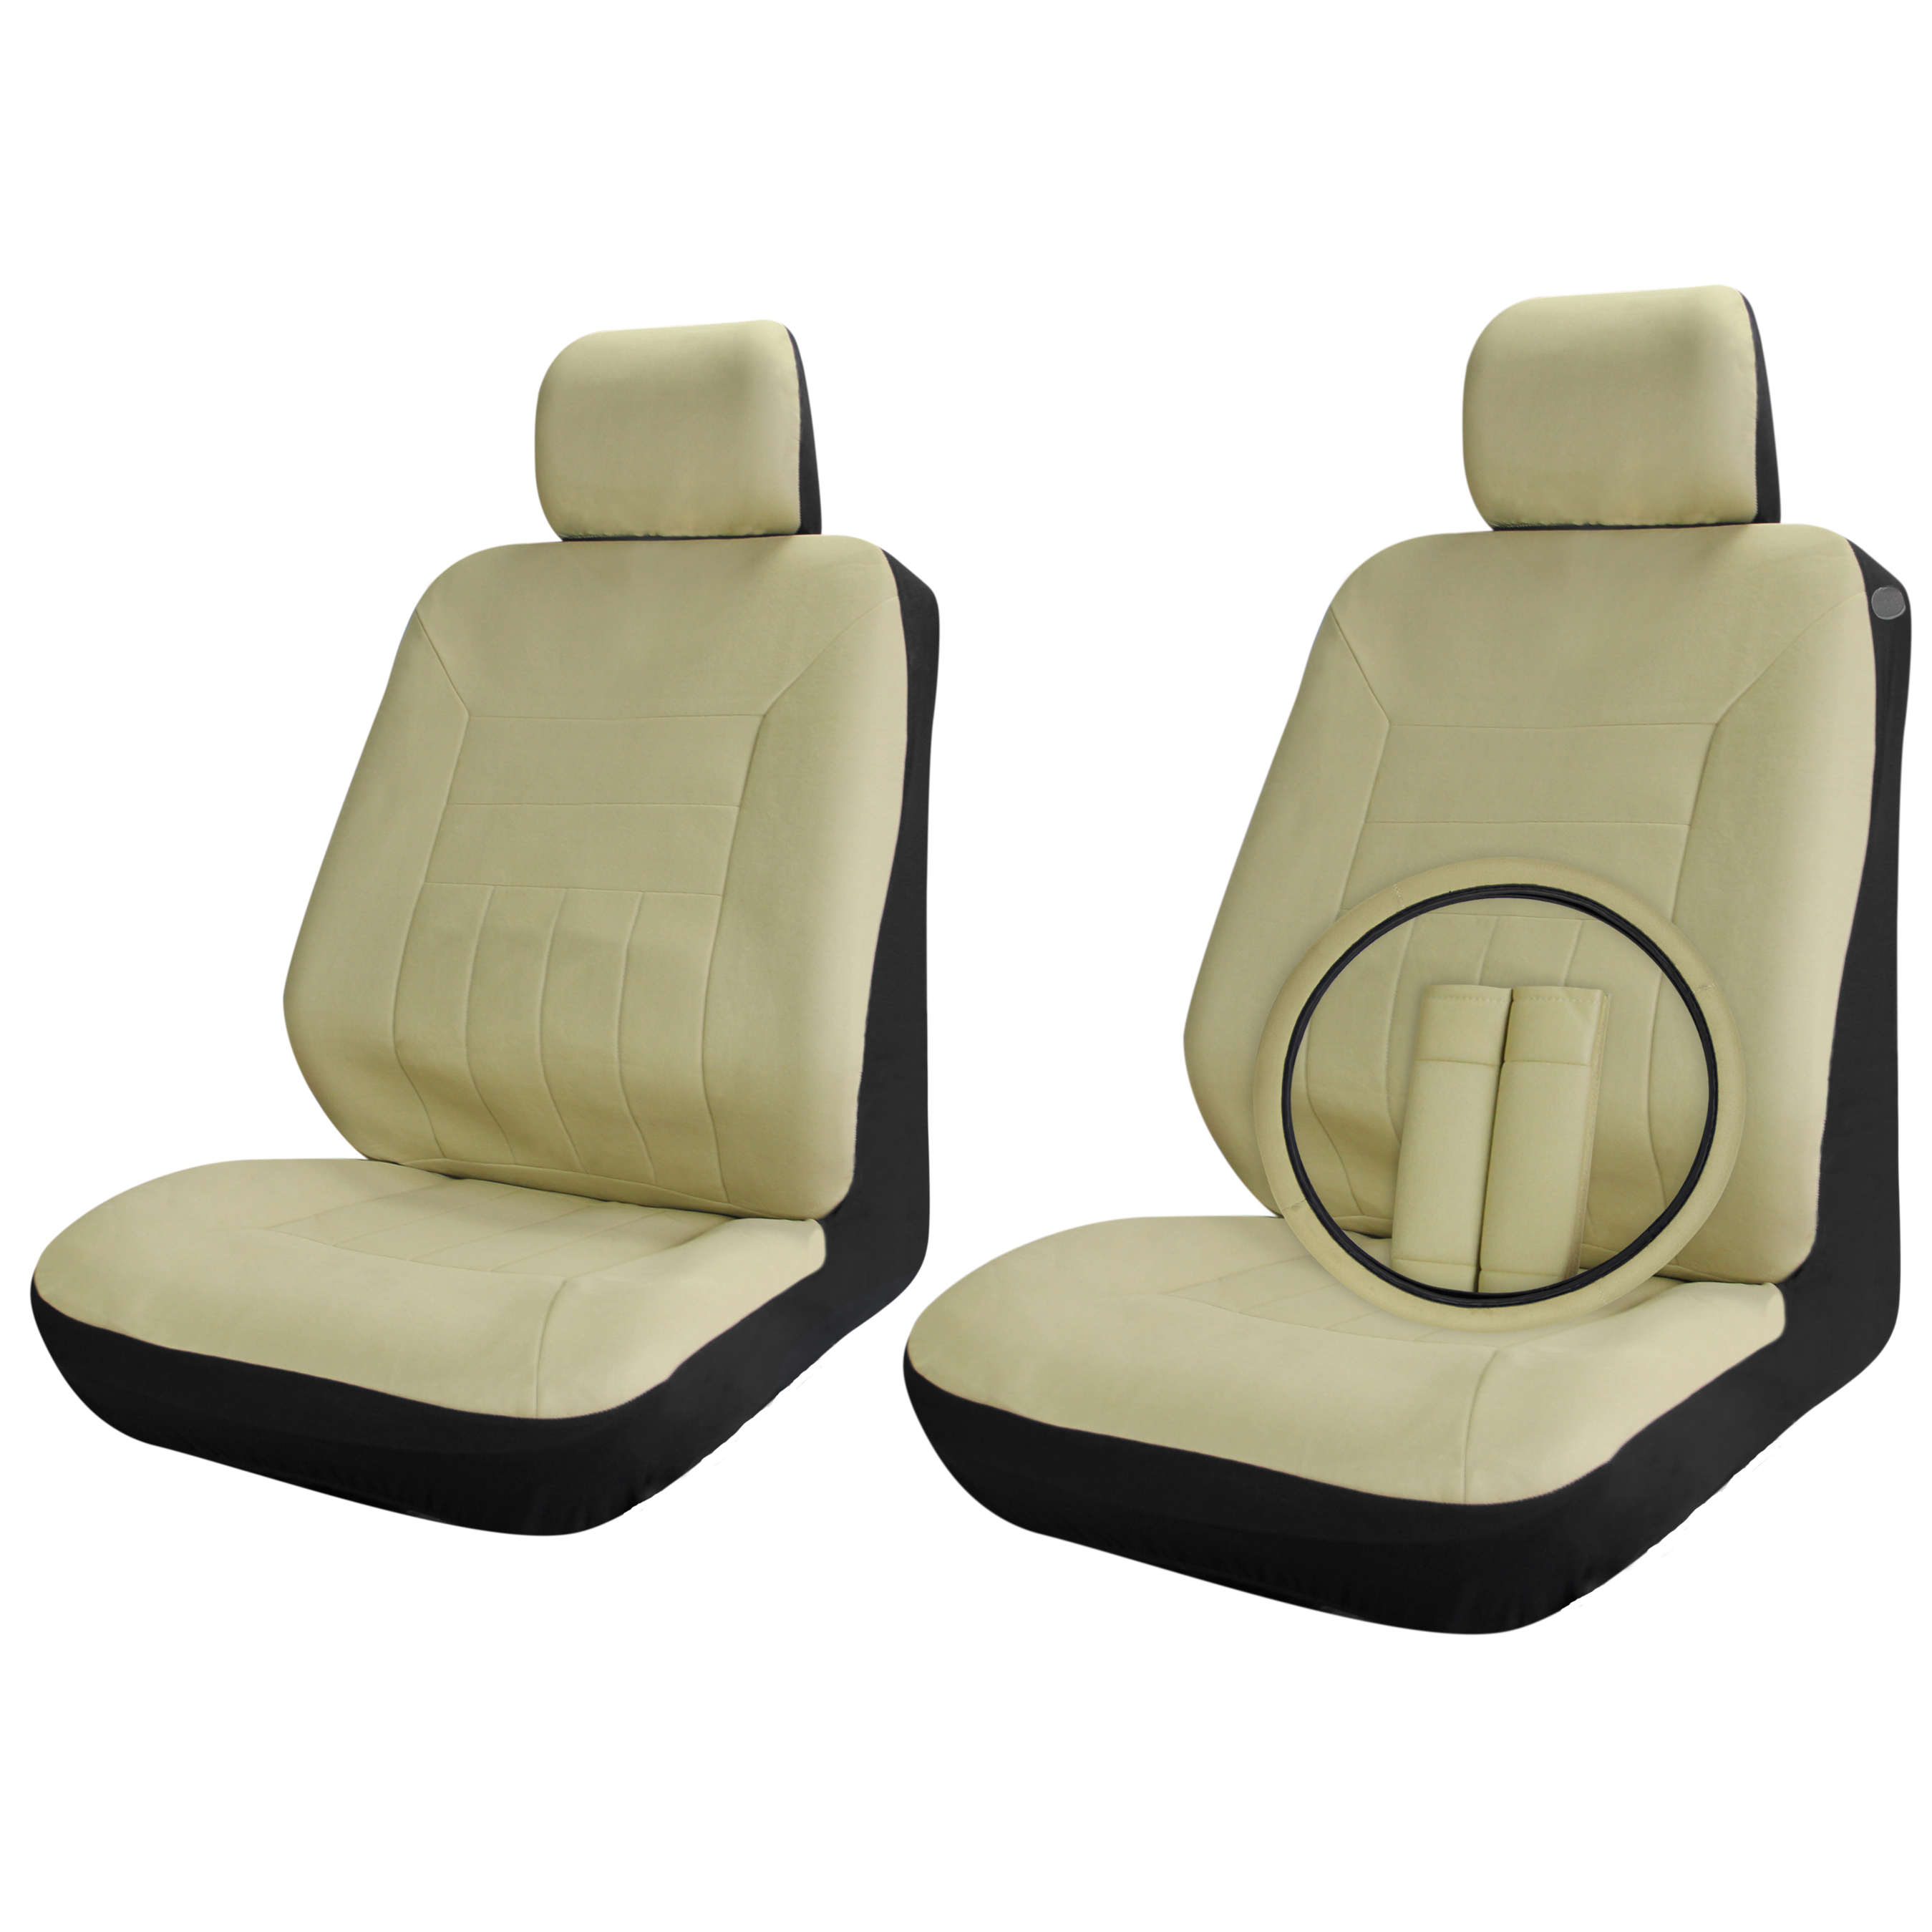 Car seat covers solid beige tan 9pc set front bucket - Car seat covers for tan interior ...